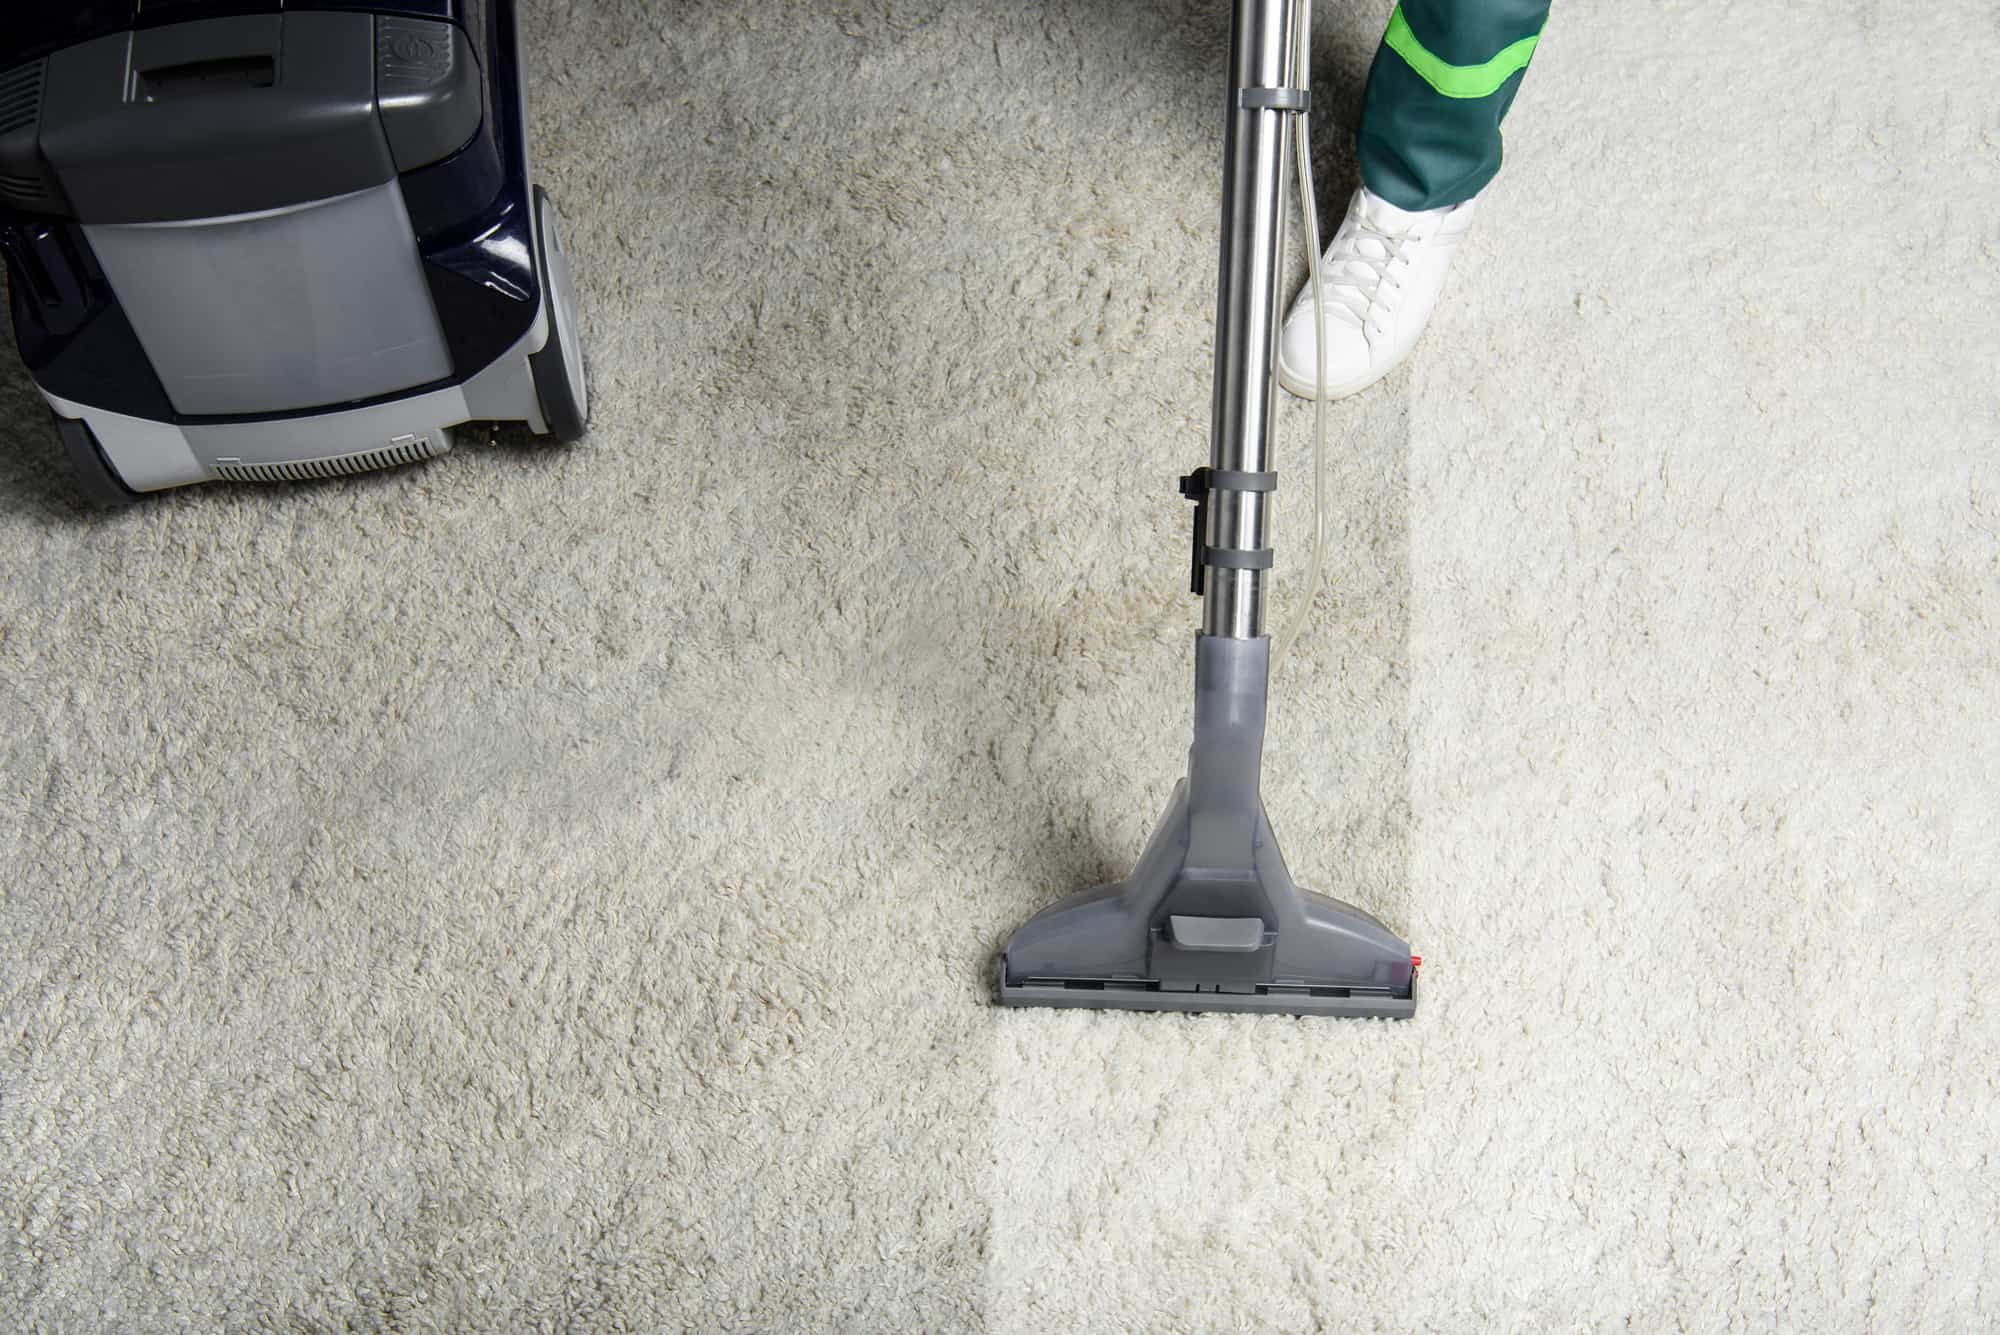 Should I Hire A Professional Carpet Cleaning Service In Tulsa or Do It Myself?